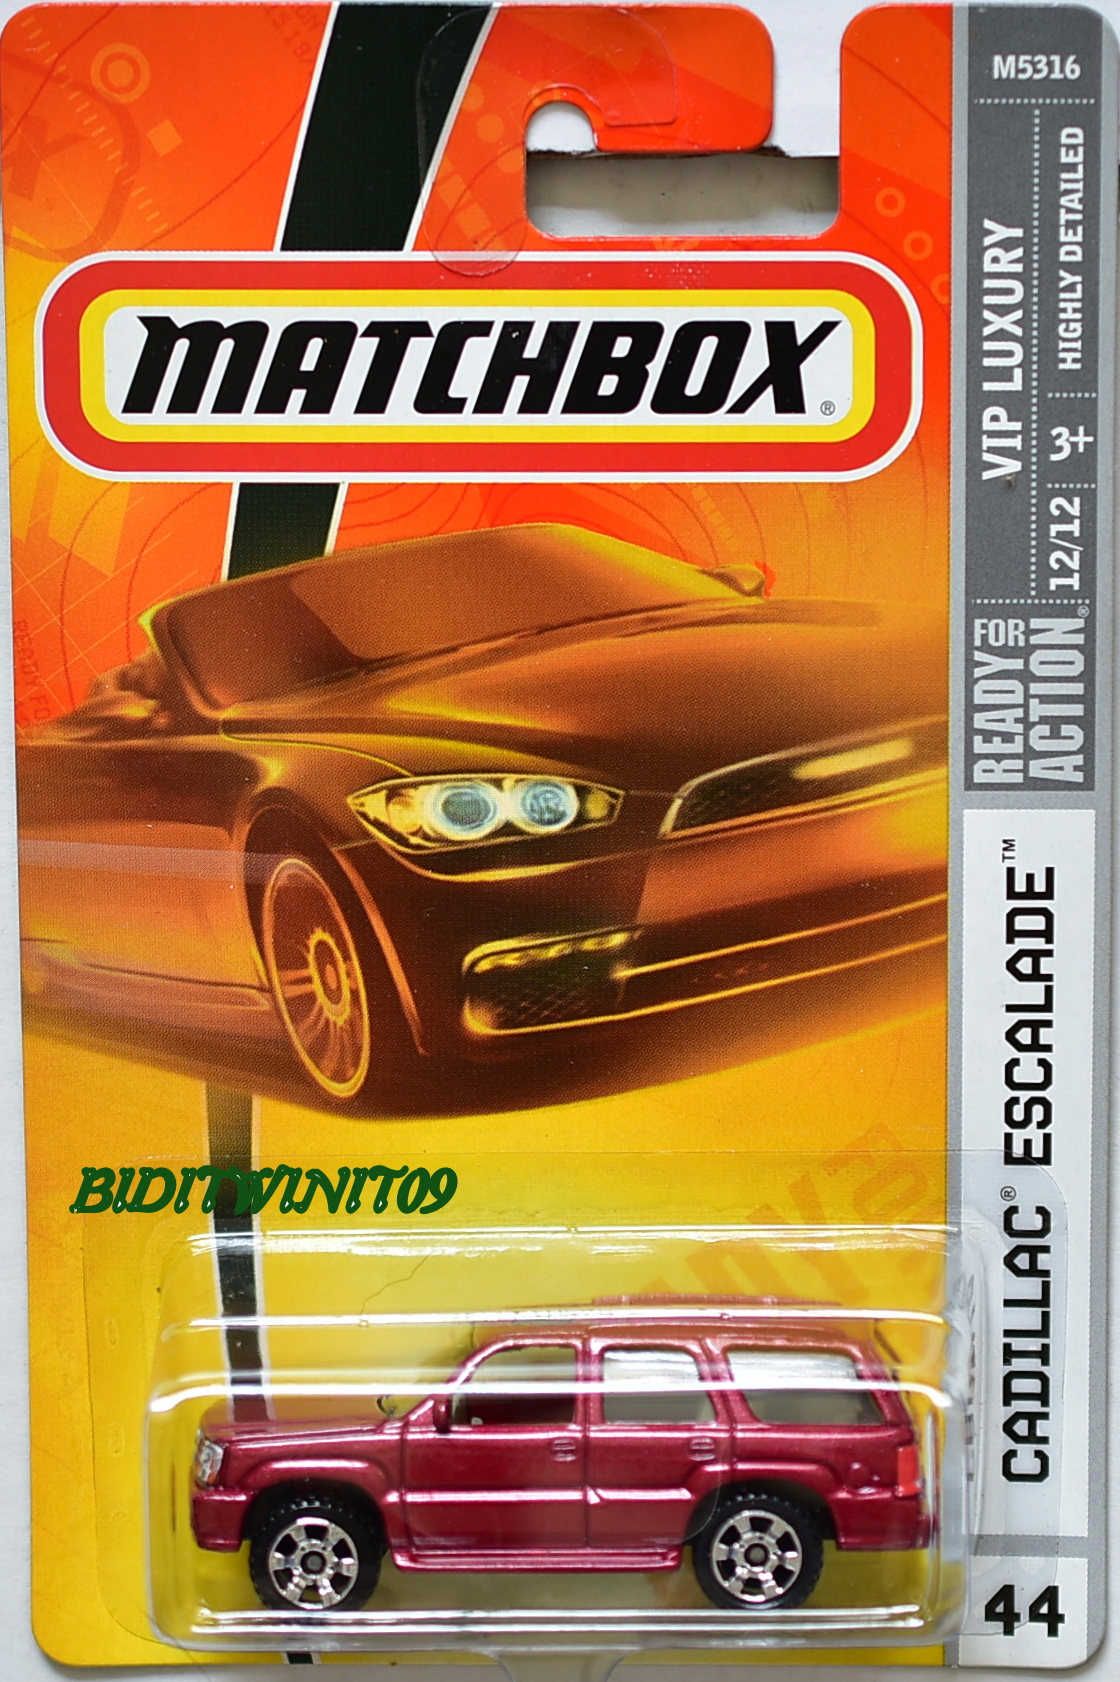 MATCHBOX 2009 VIP LUXURY CADILLAC ESCALADE #44 RED E+